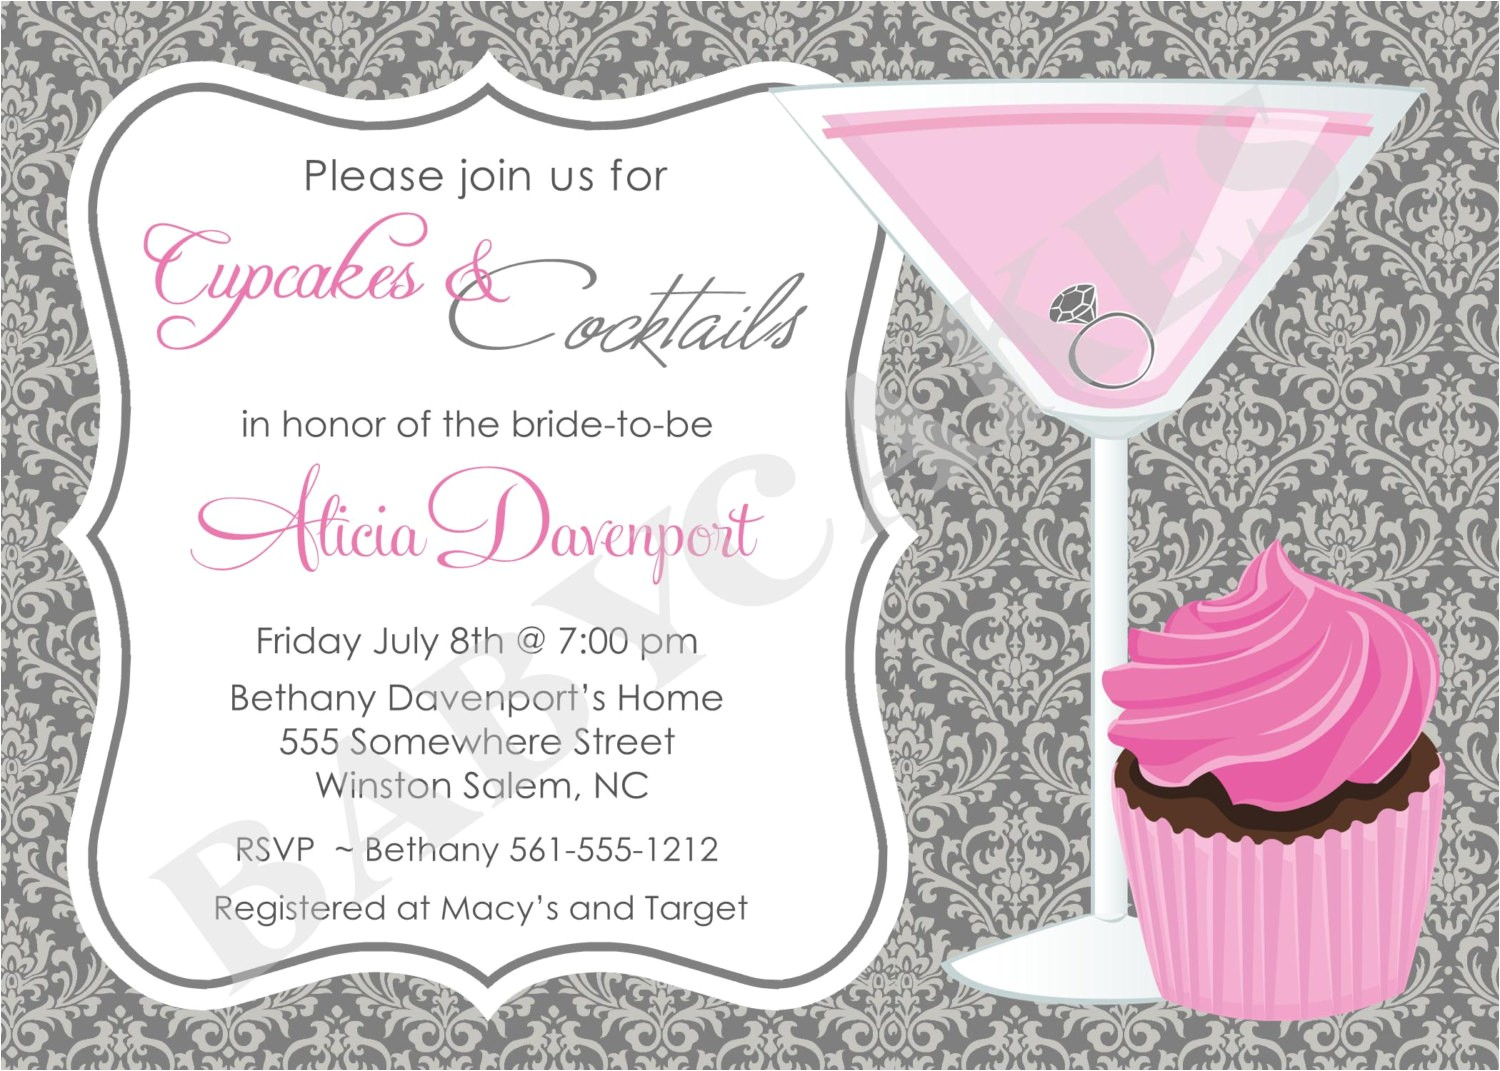 cupcakes and cocktails bridal shower